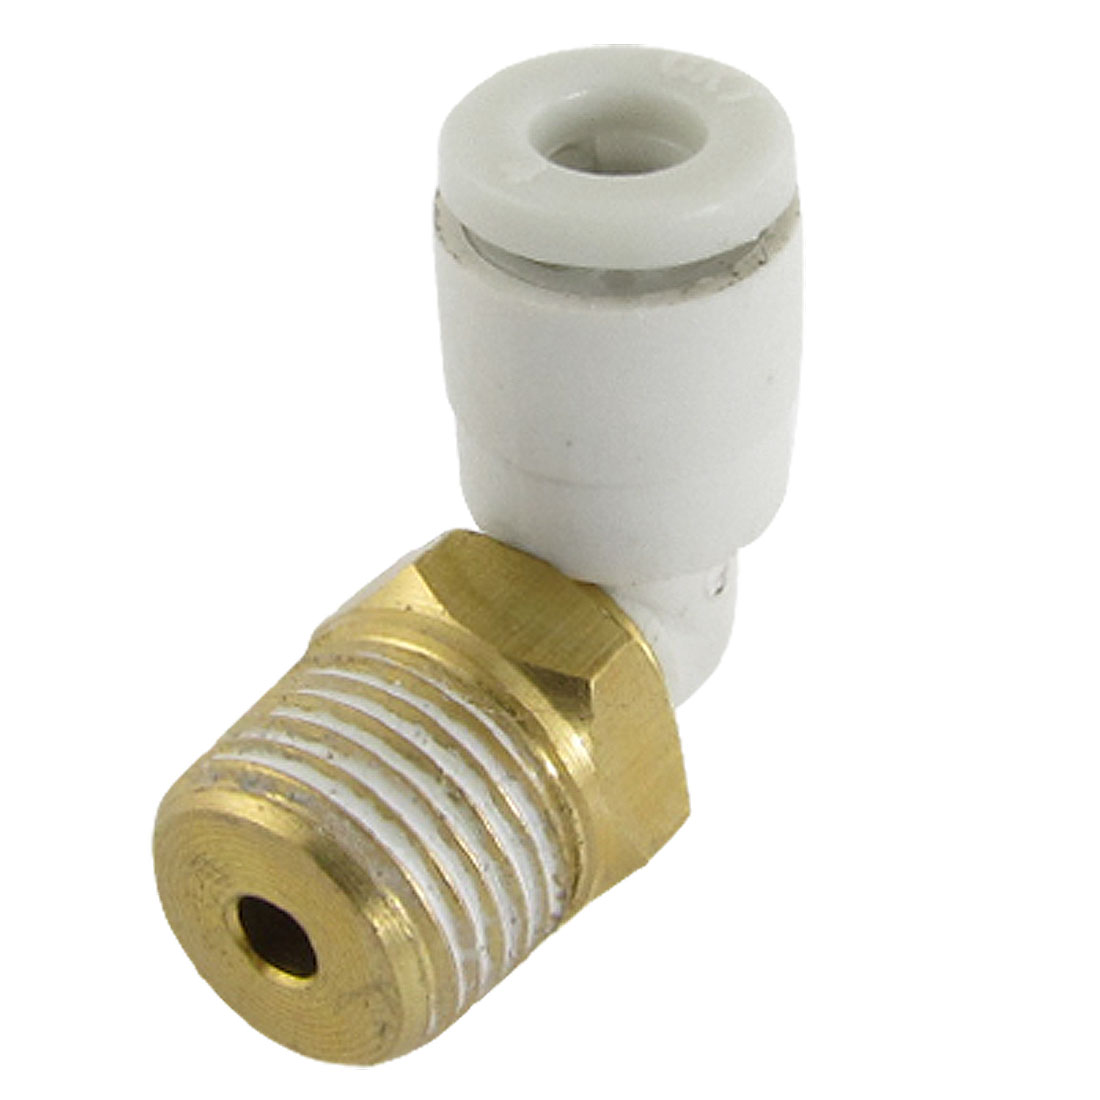 4mm OD Tube to 10mm Male Thread Pneumatic Connector Elbow Fitting